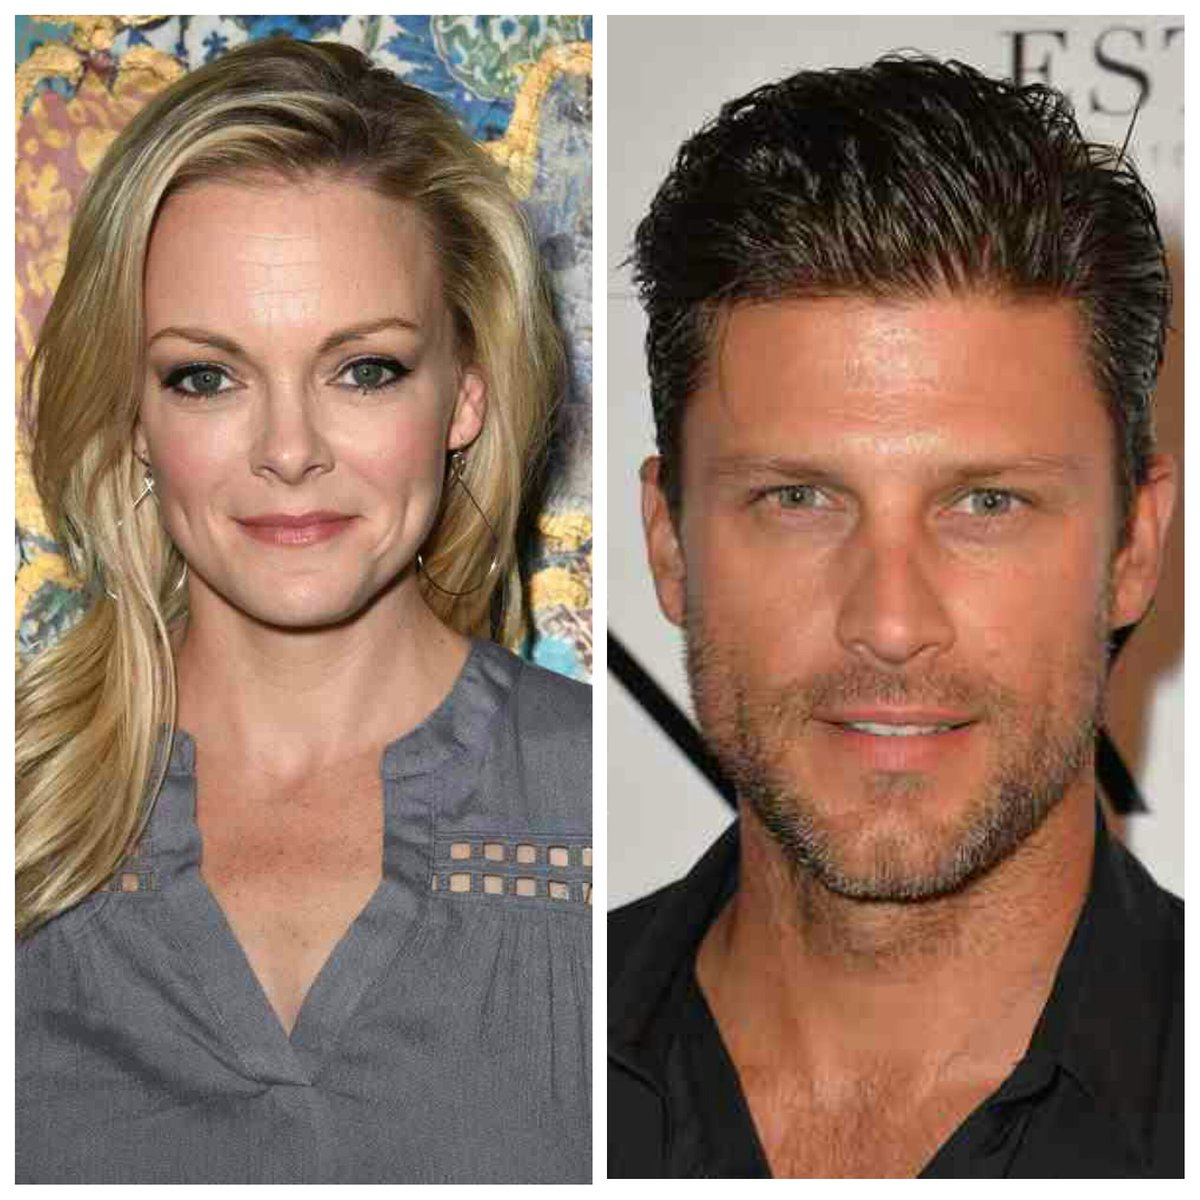 #DISHINDAYS FANS @Marth27 & @greg_vaughan join us this Sunday on @afterbuzztv DONT MISS IT @loraynelove @Blakhopela https://t.co/02HuyxLtE8